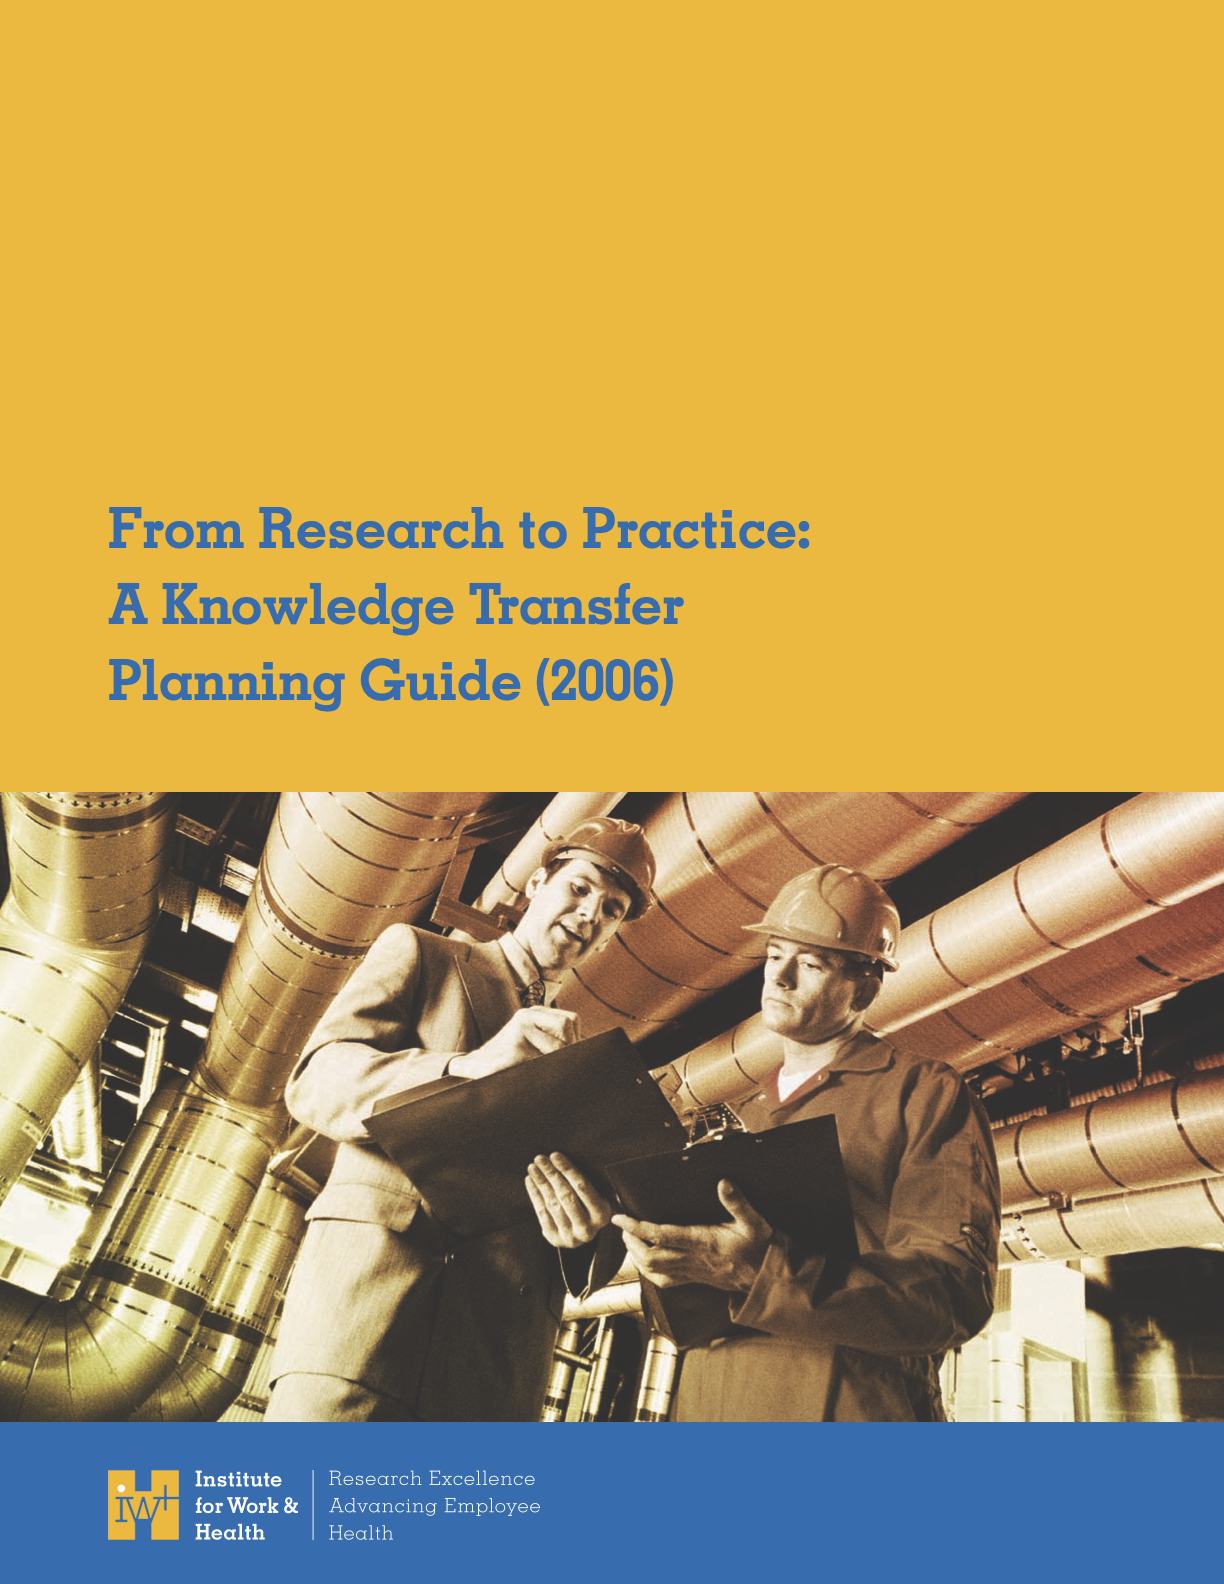 From Research to Practice: A Knowledge Transfer Planning Guide and Worksheets